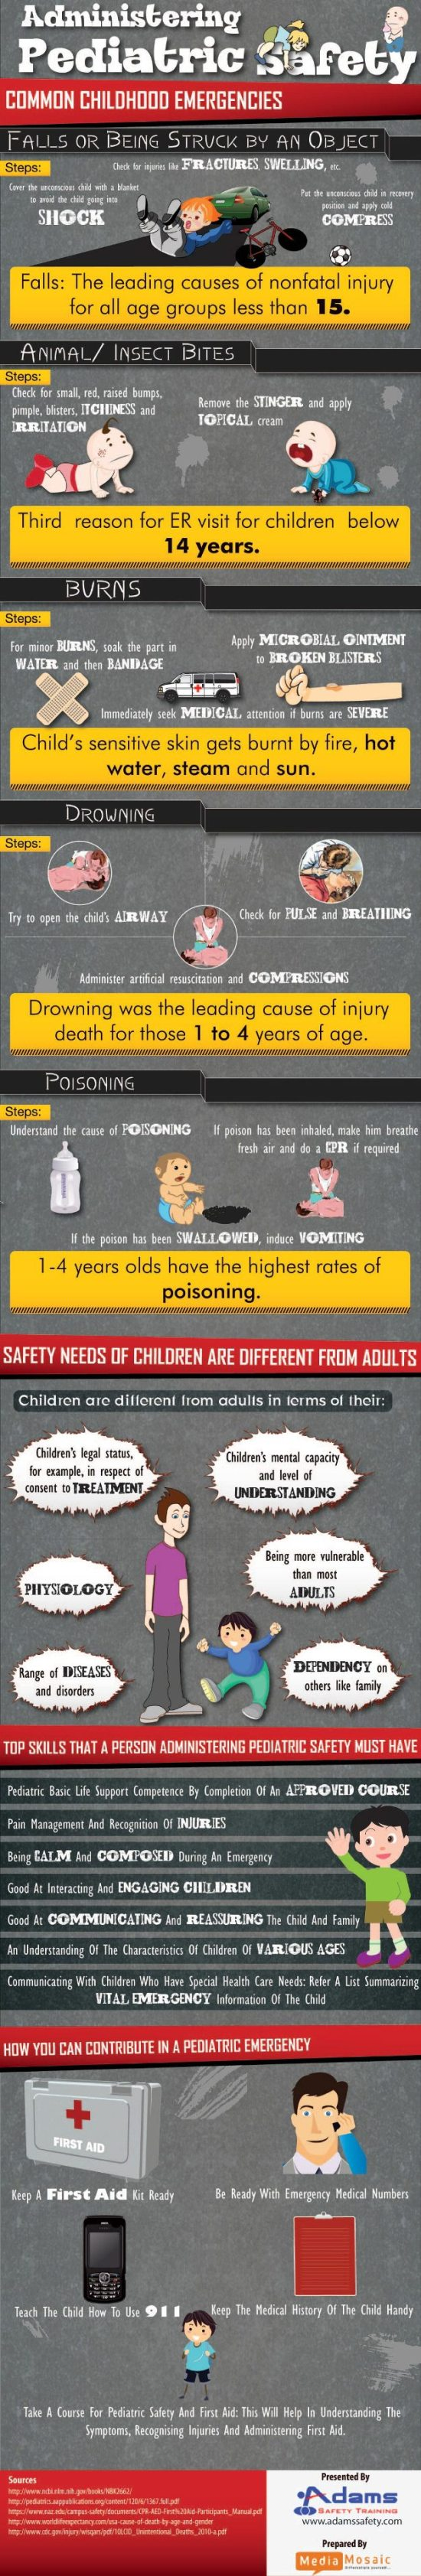 Administering Pediatric Safety - InfoGraphic